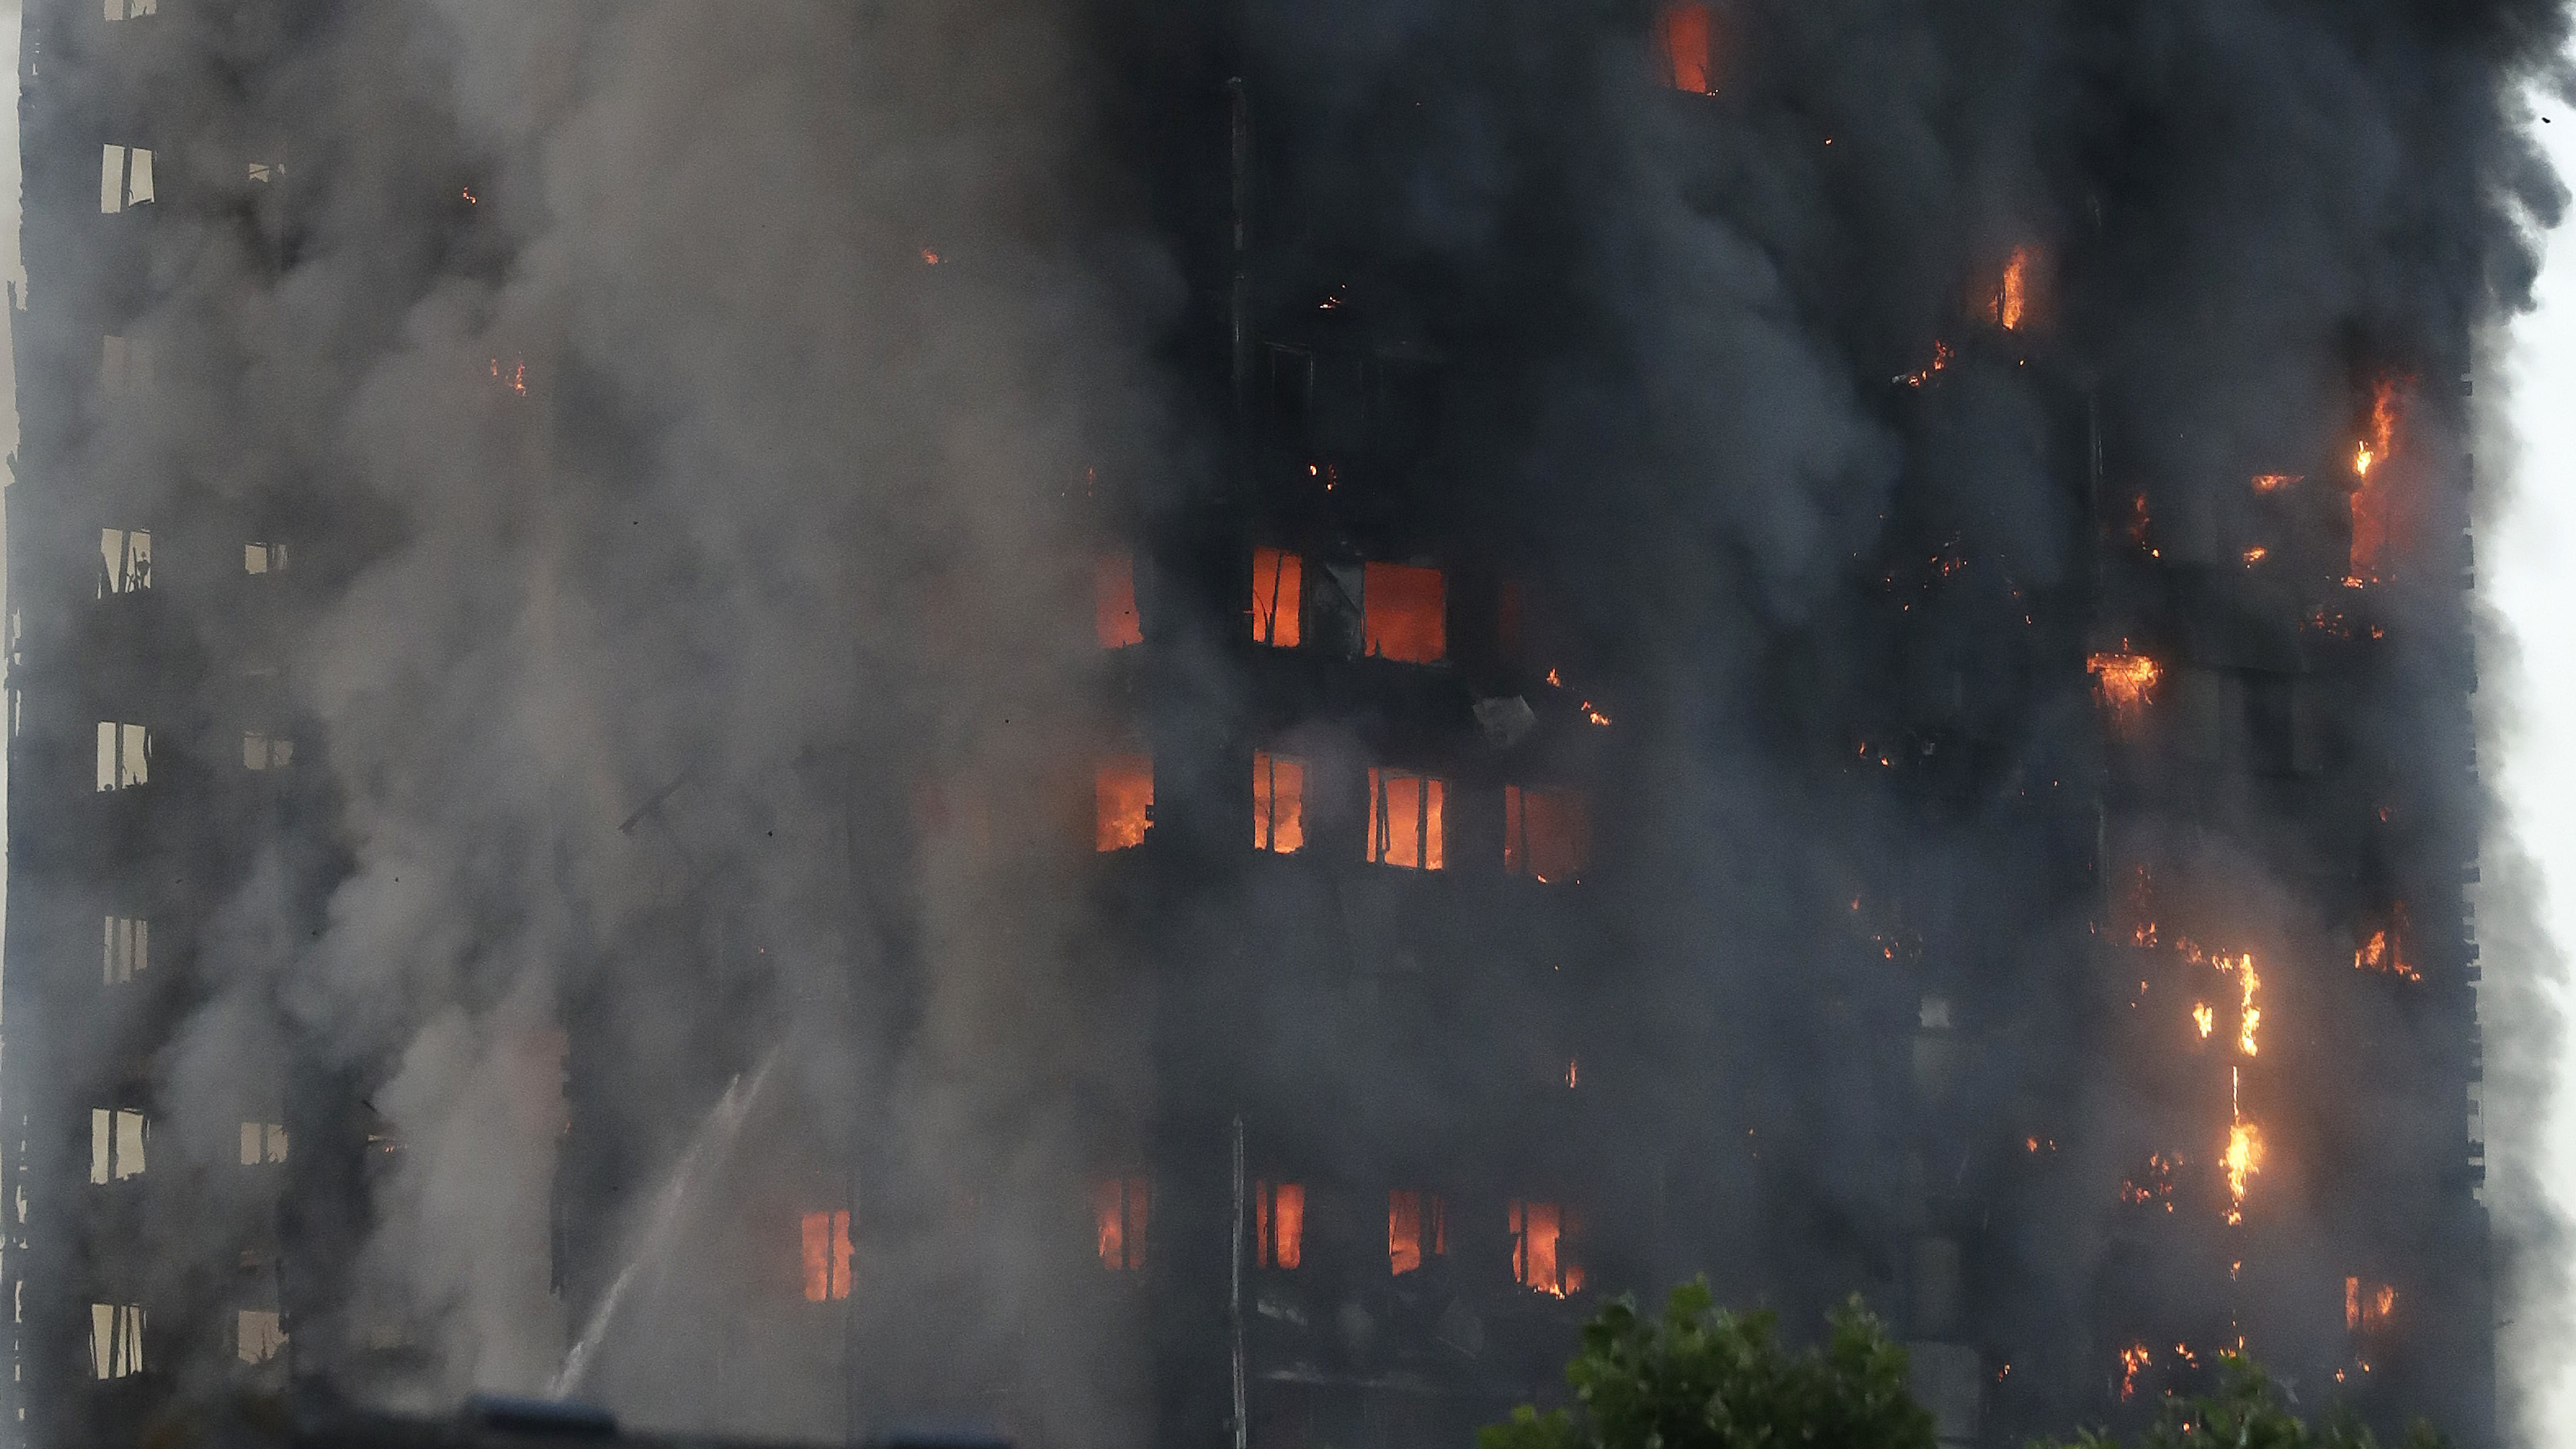 Residents had been warning for years of London apartment tower's fire risk